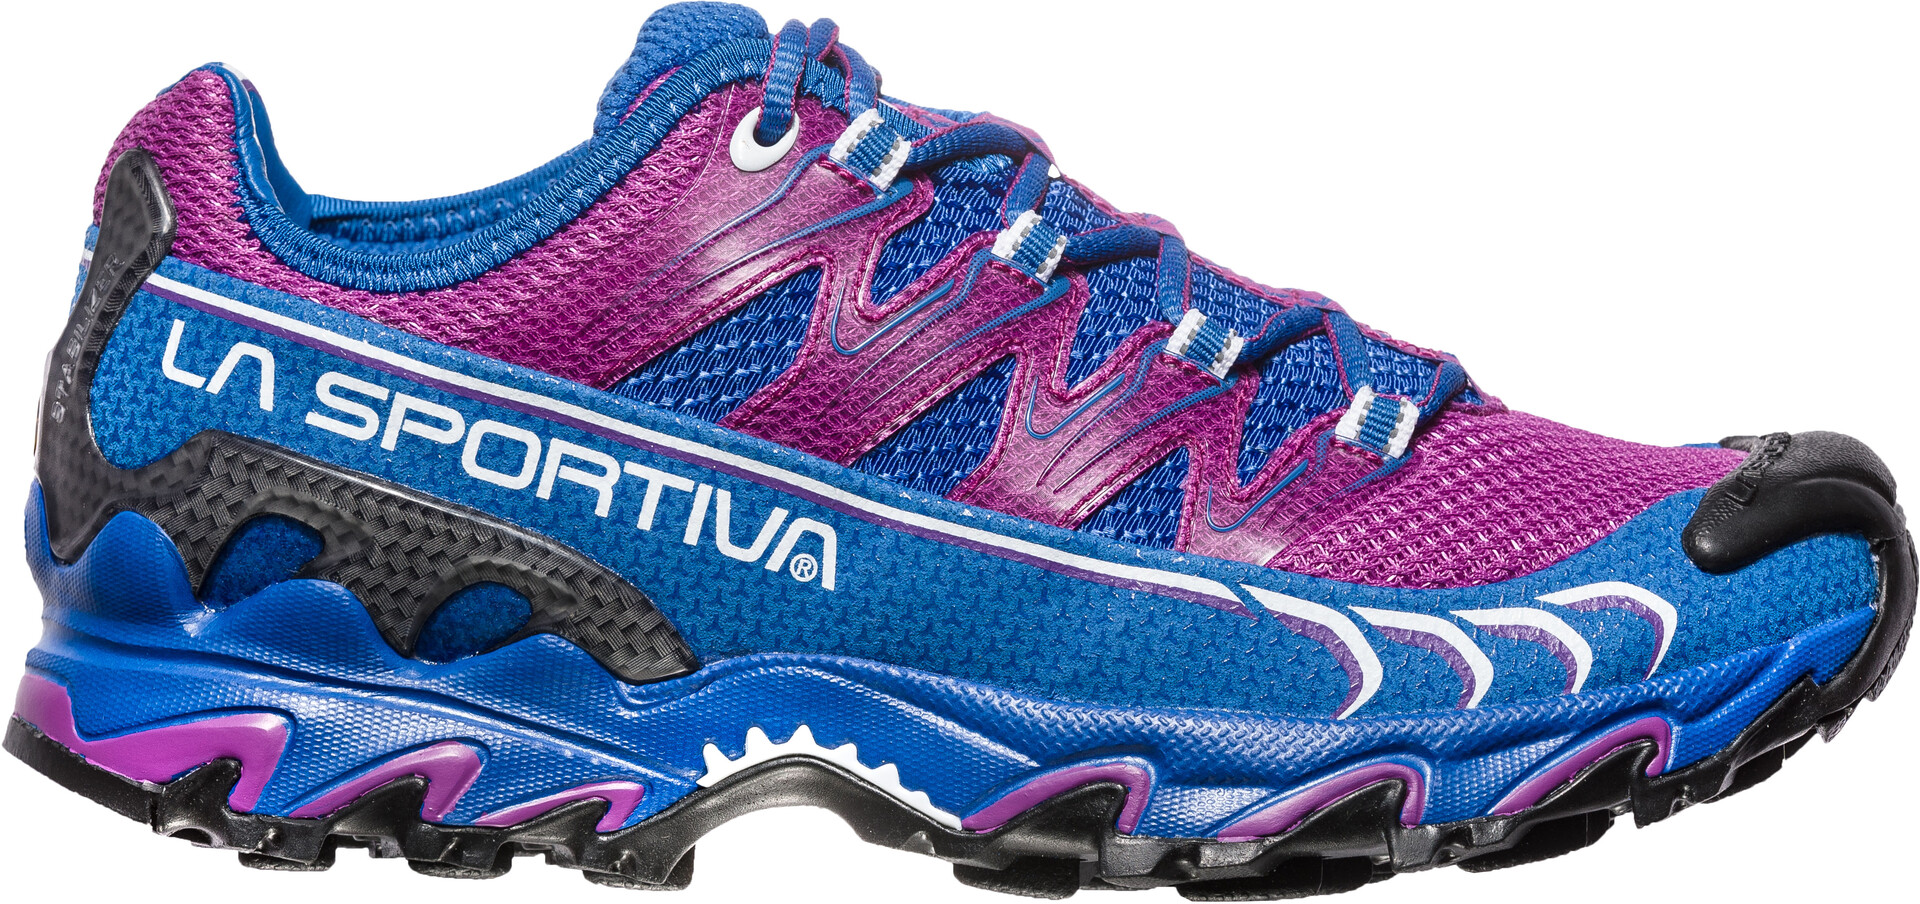 Purplemarine Sportiva Running Shoes Damen Blue Raptor La Ultra VpMqSUz